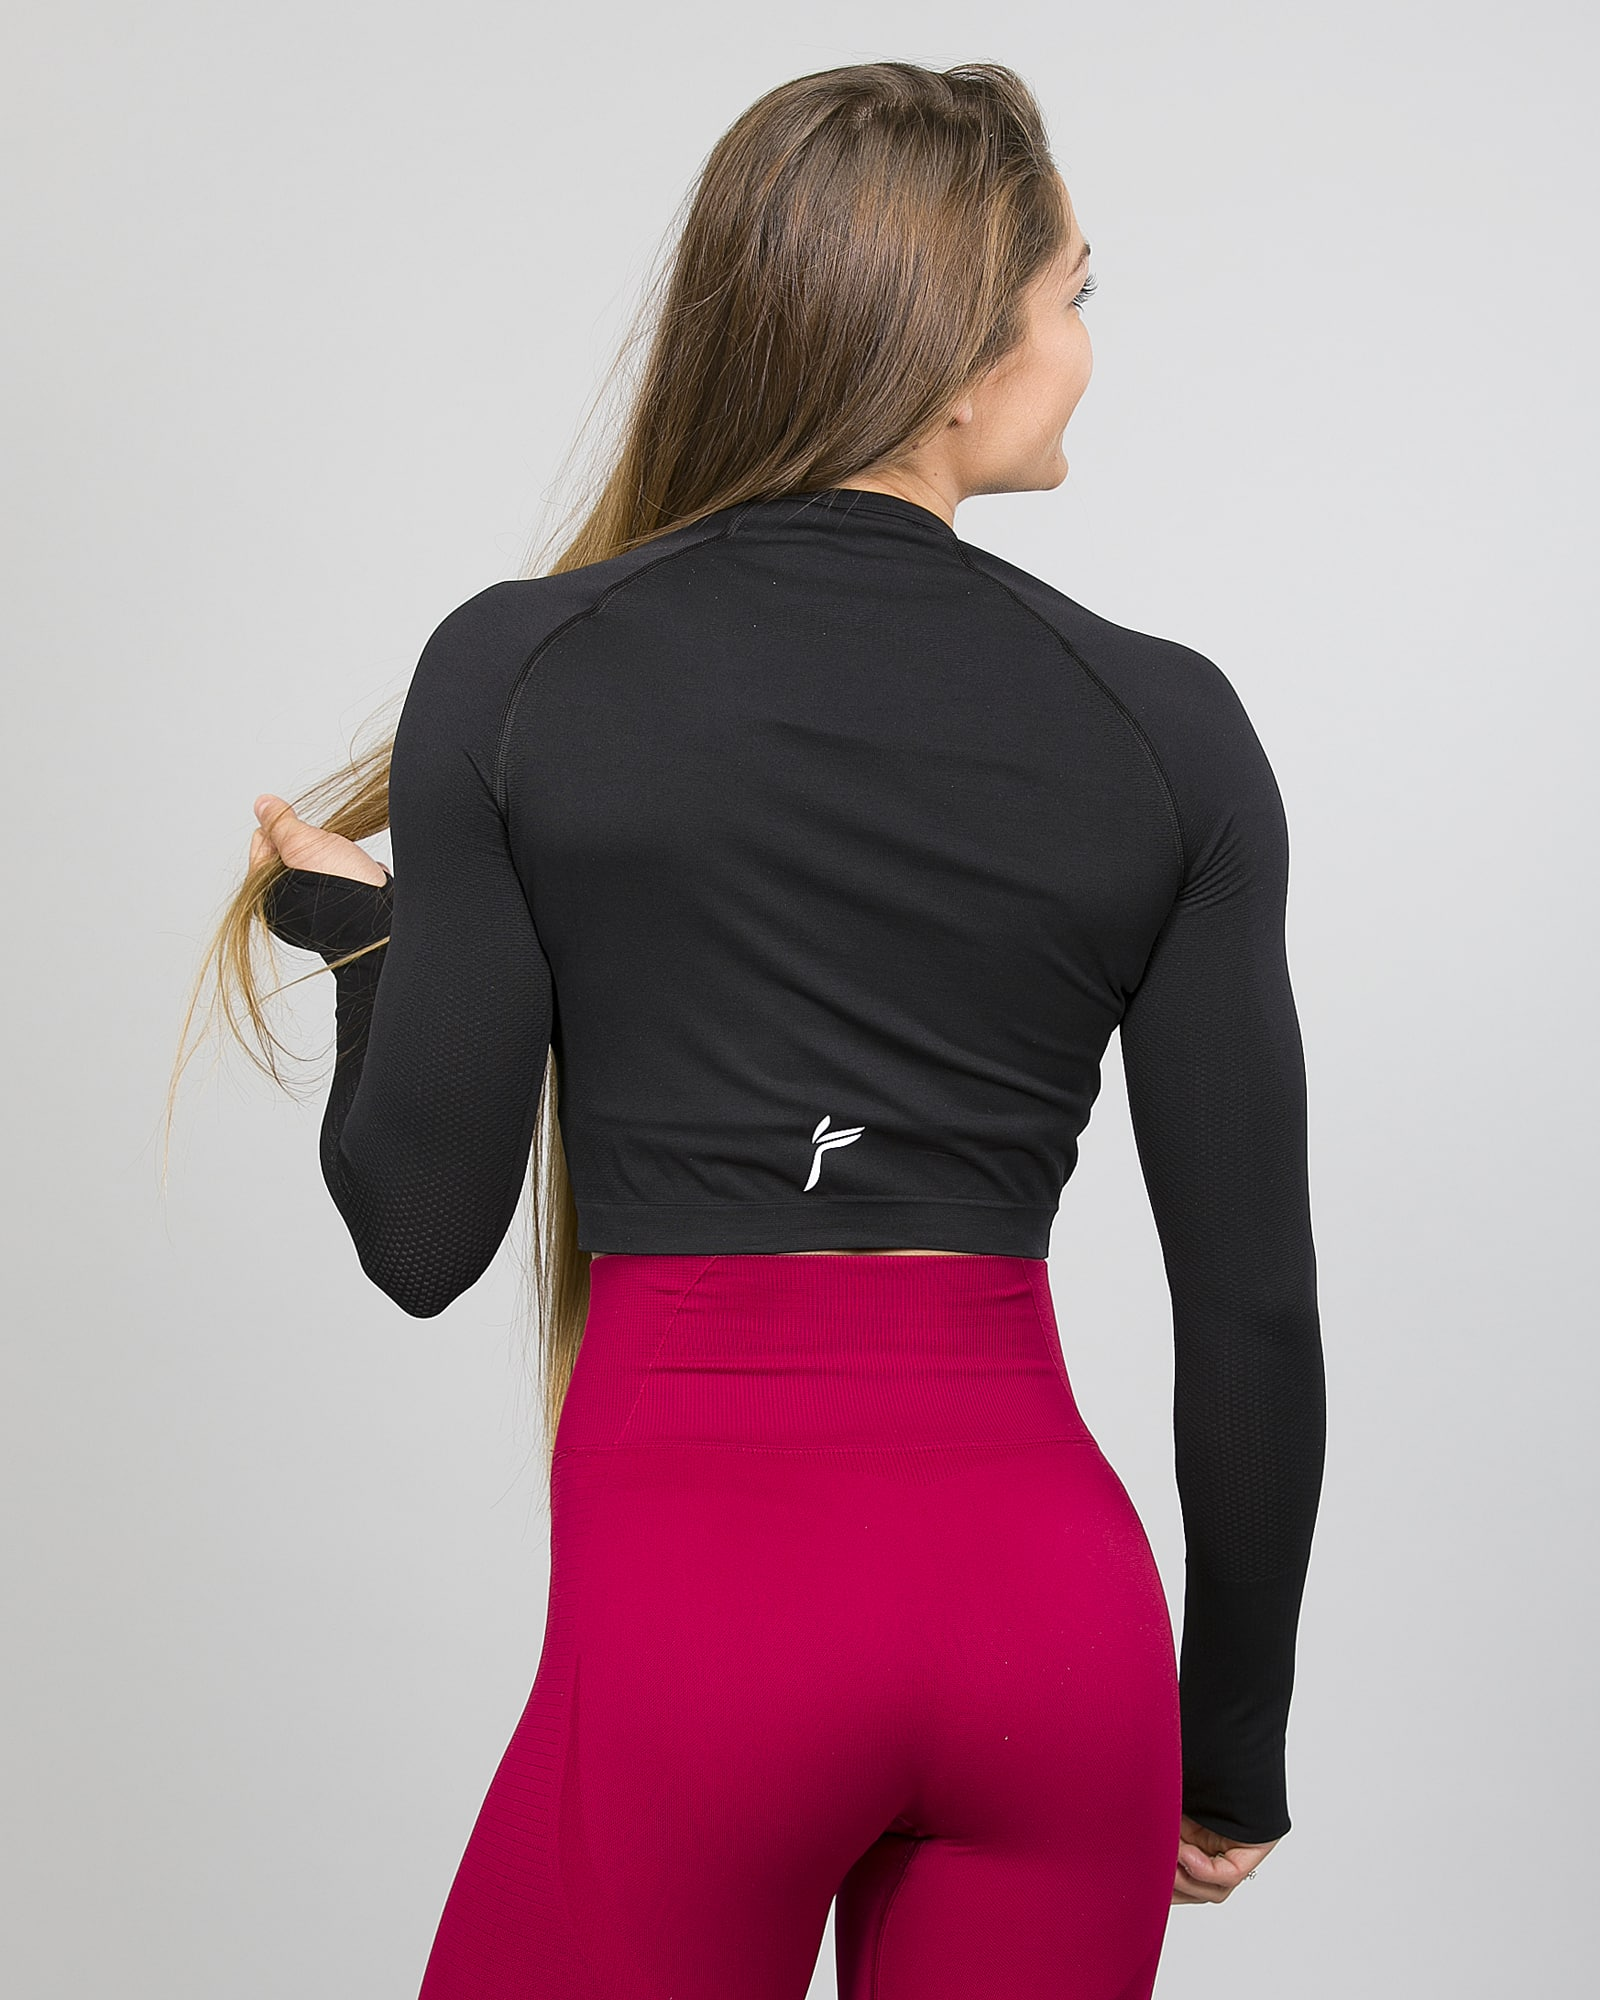 Famme Ocean Crop Top - Black ocls-bk and Vortex Leggings - Dark Red vgwk.dr back